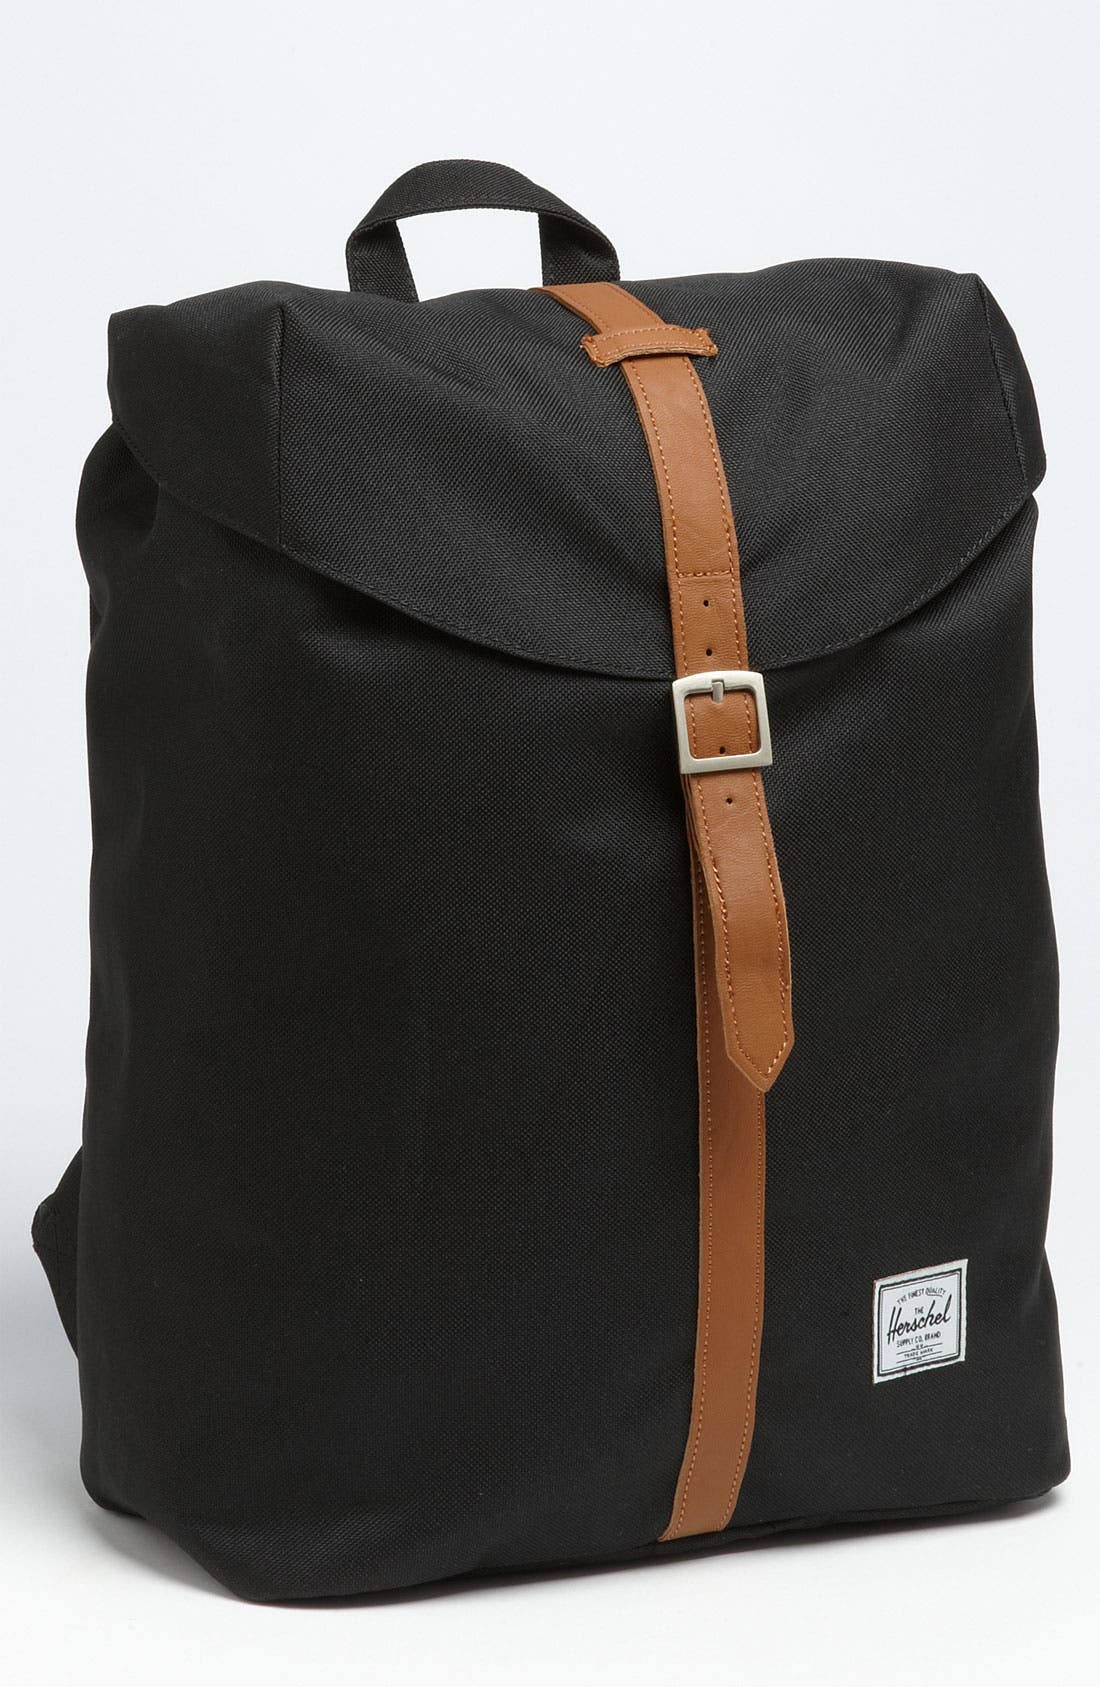 Alternate Image 1 Selected - Herschel Supply Co 'Post' Backpack